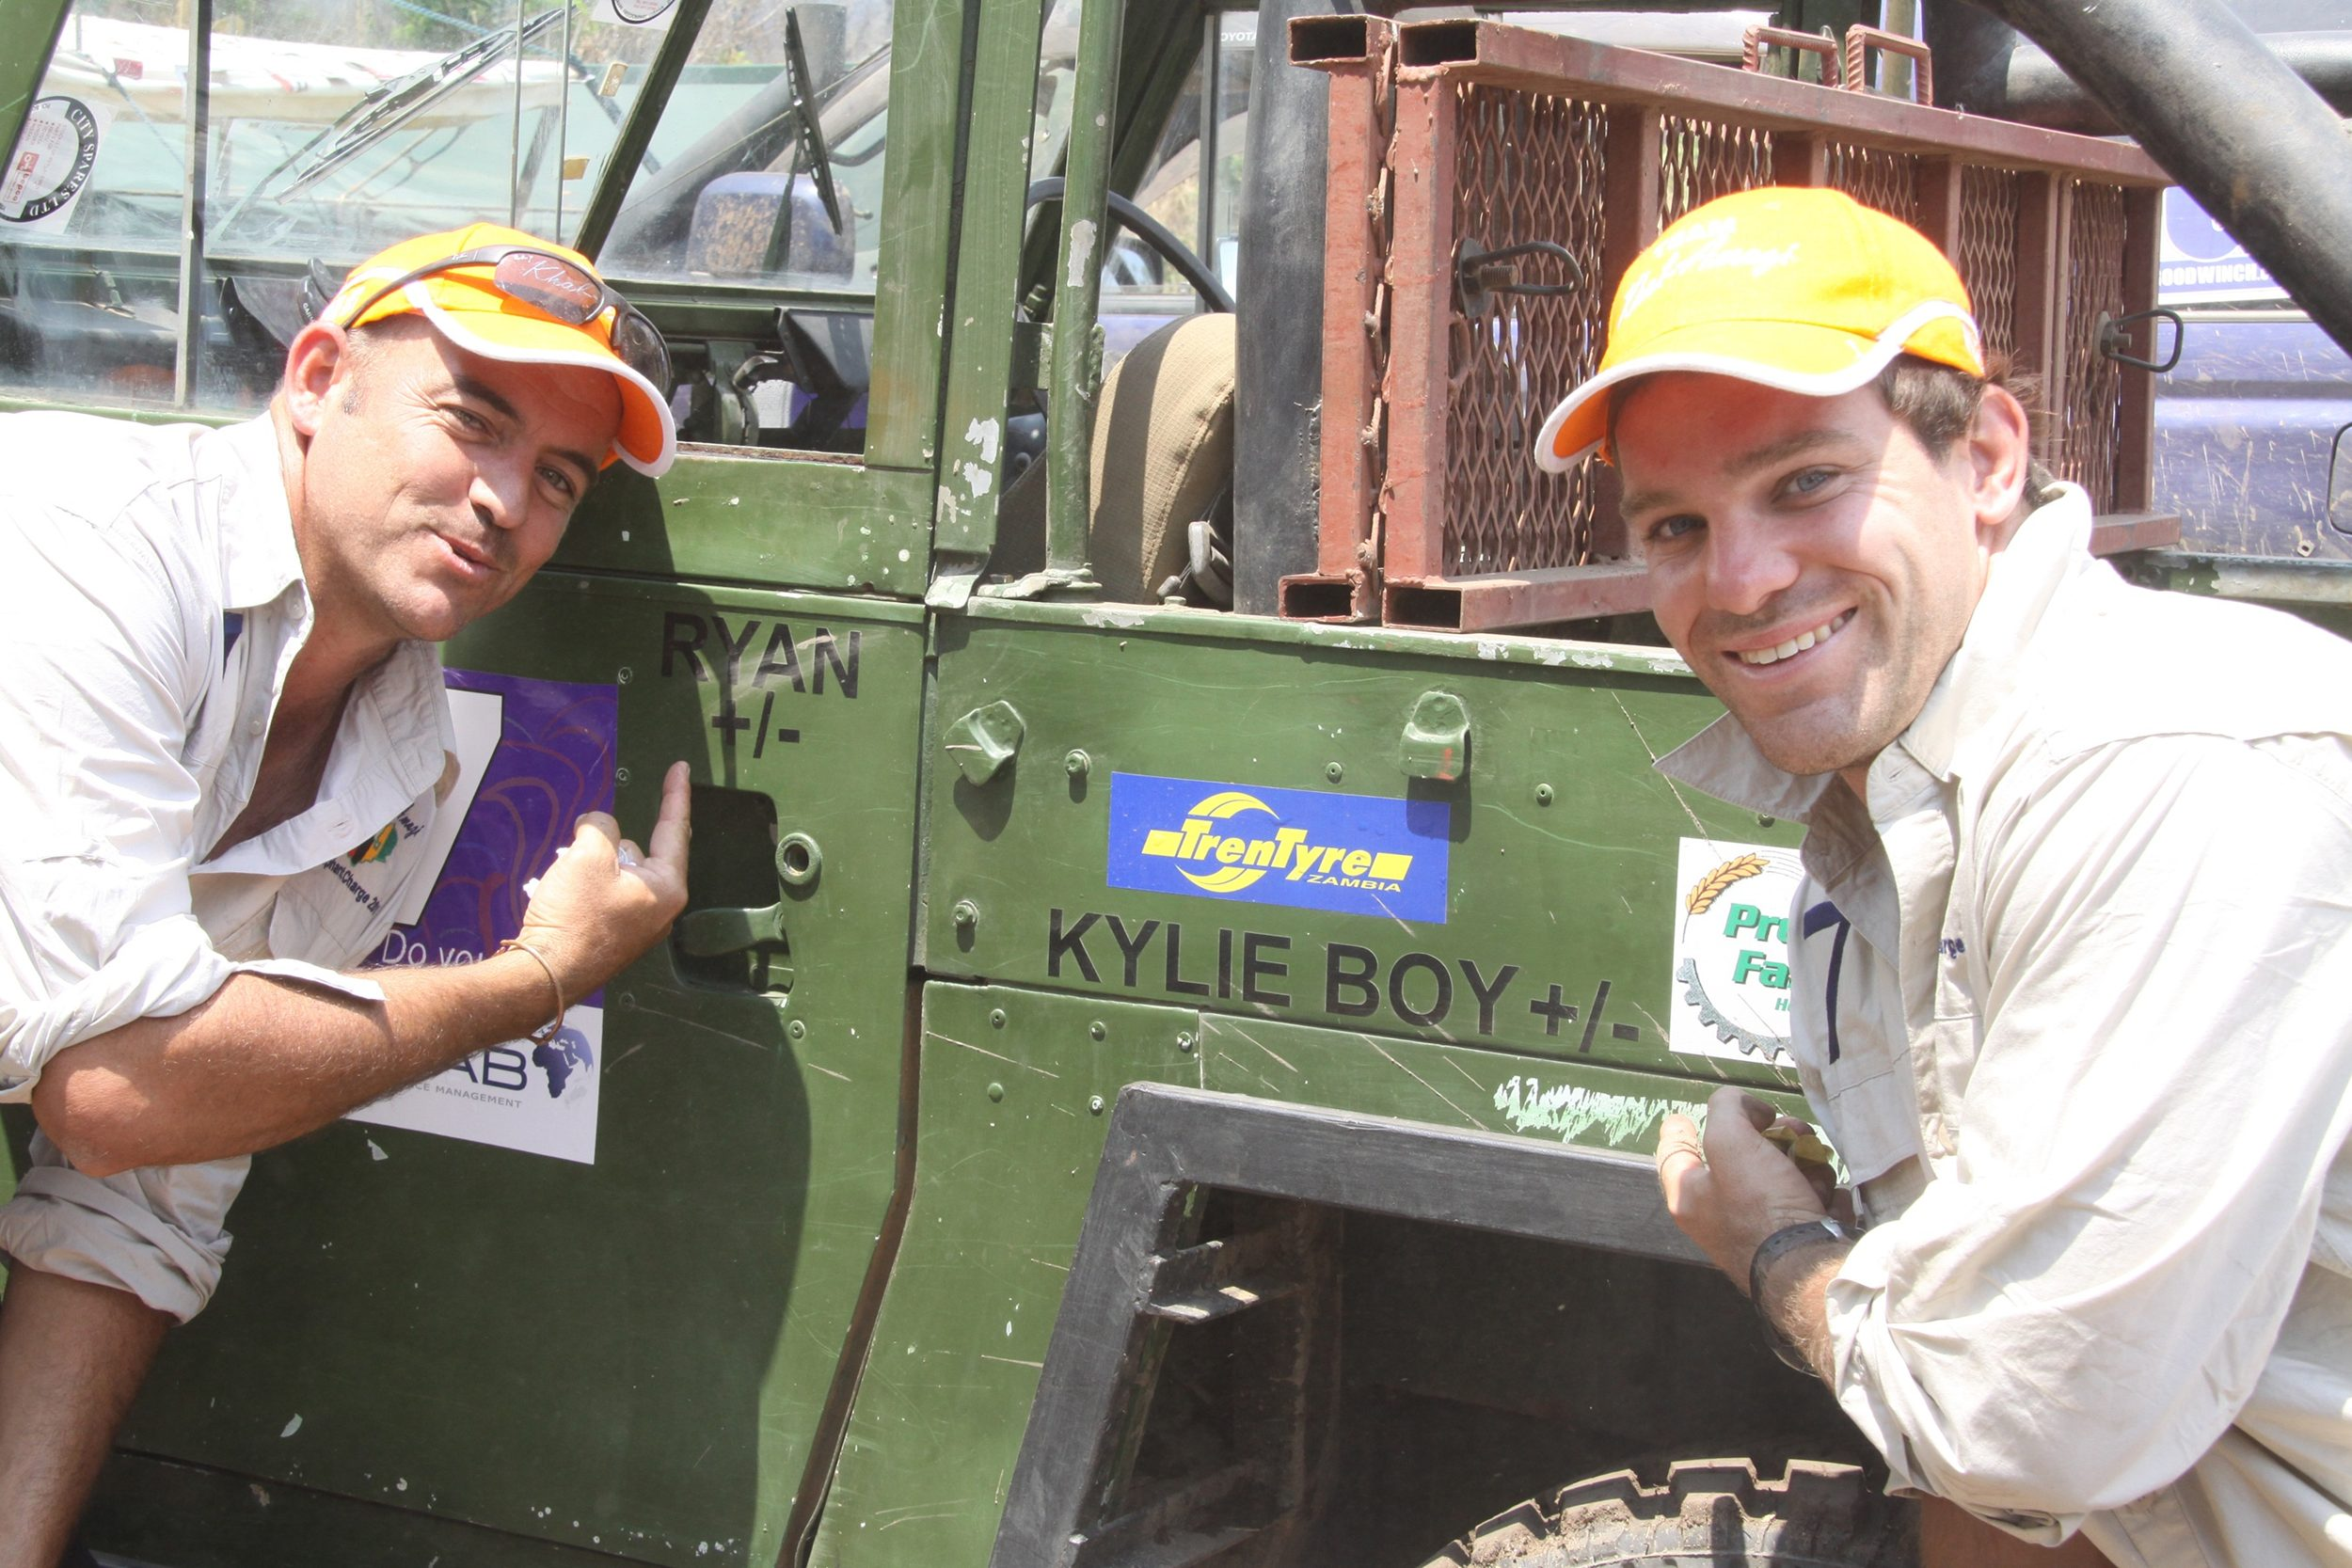 Ryan and Kyle